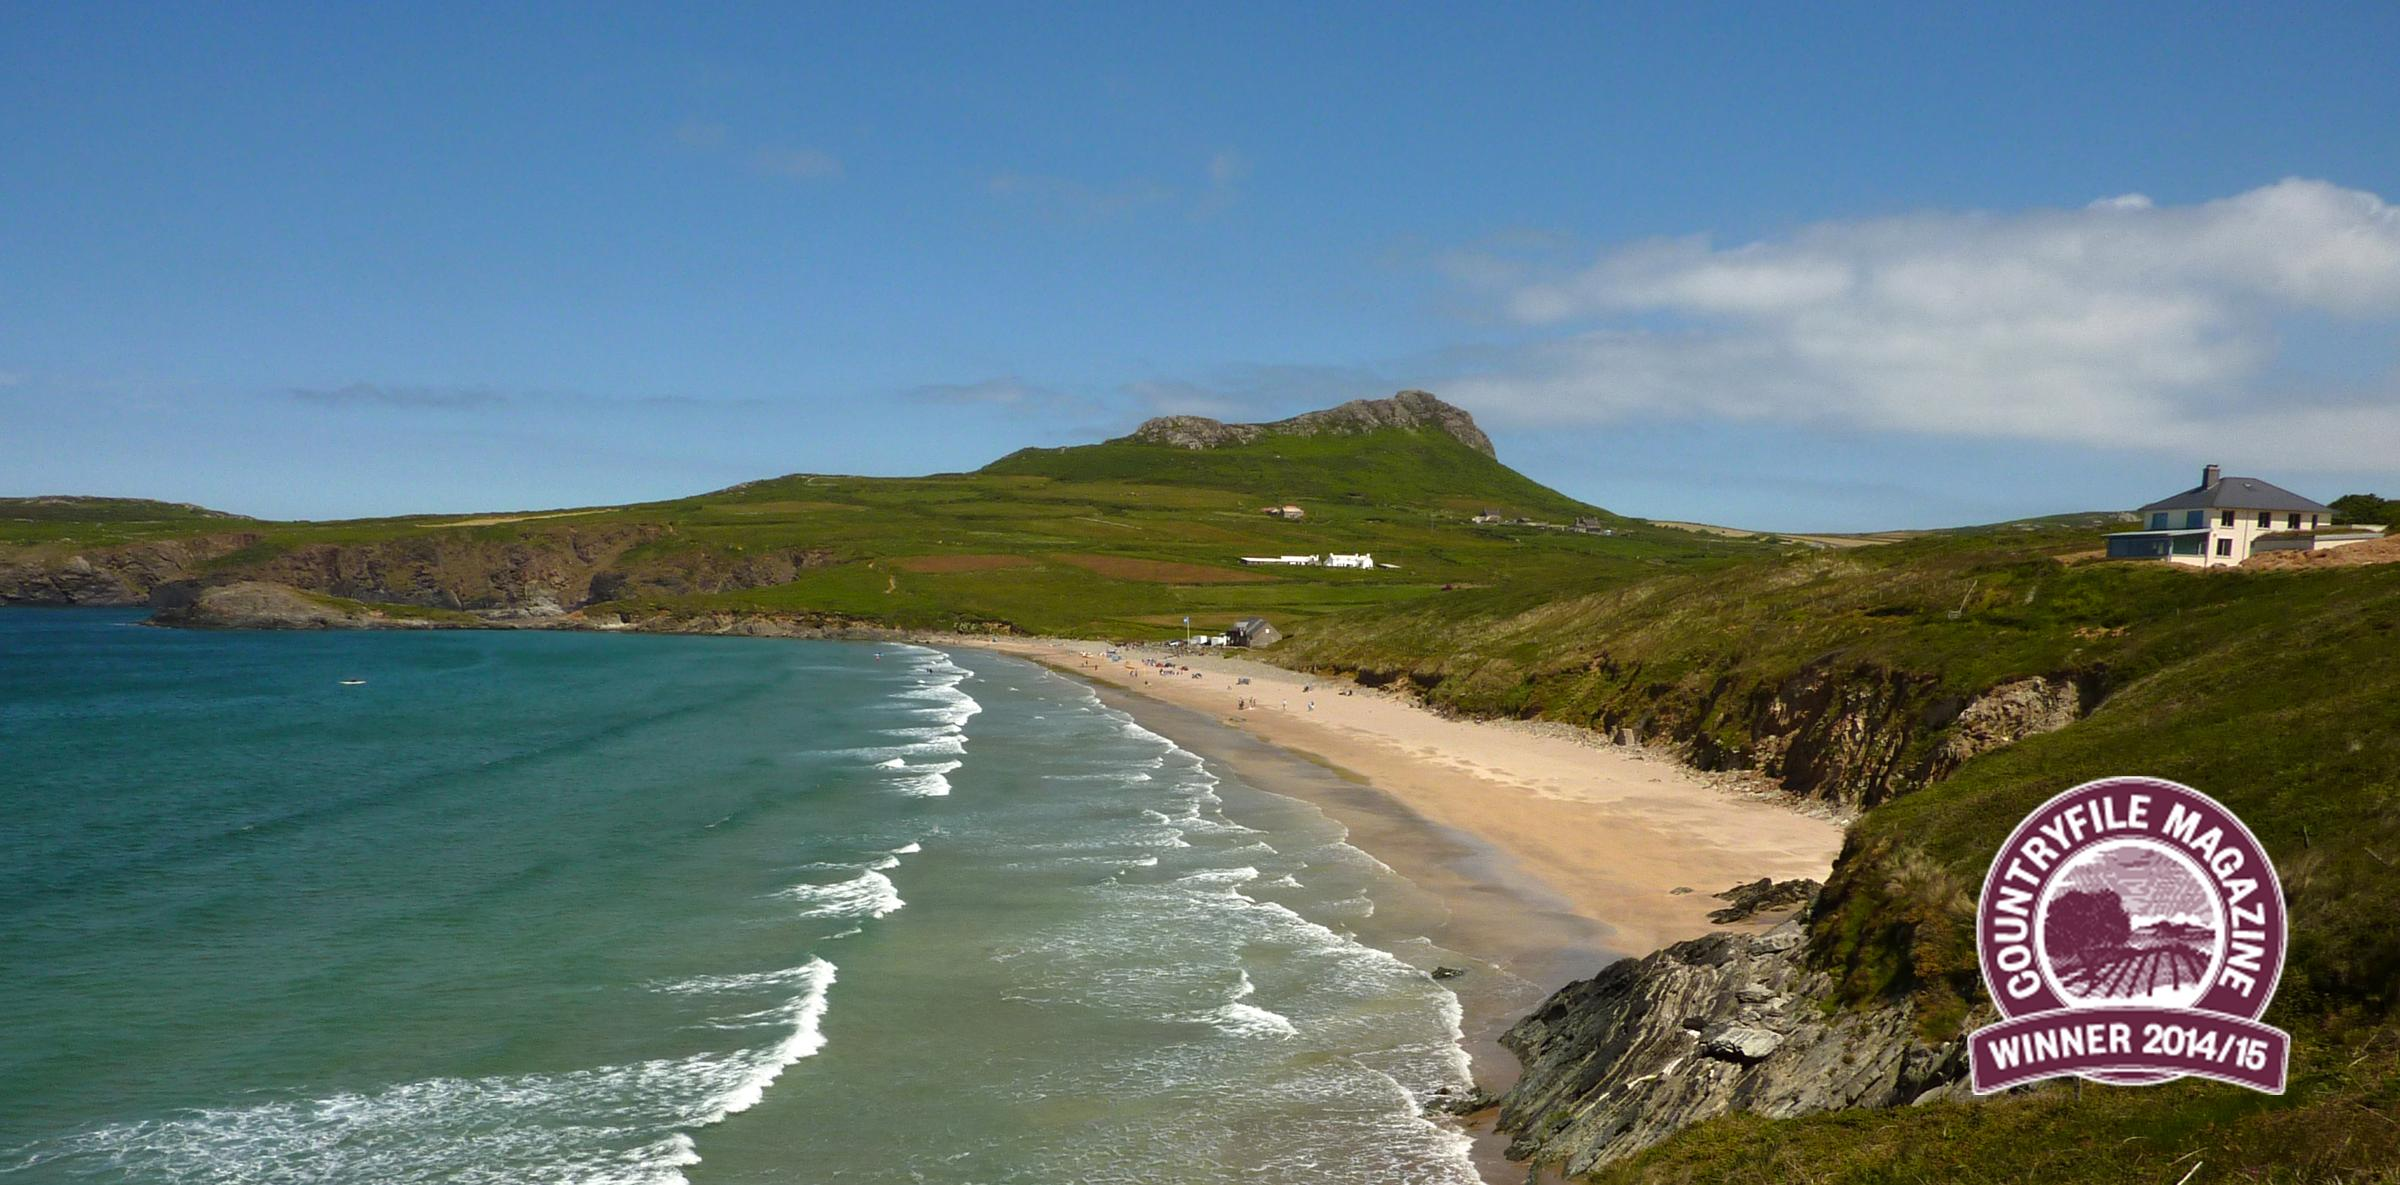 Whitesands scoops BBC Countryfile Magazine's Beach of the Year prize